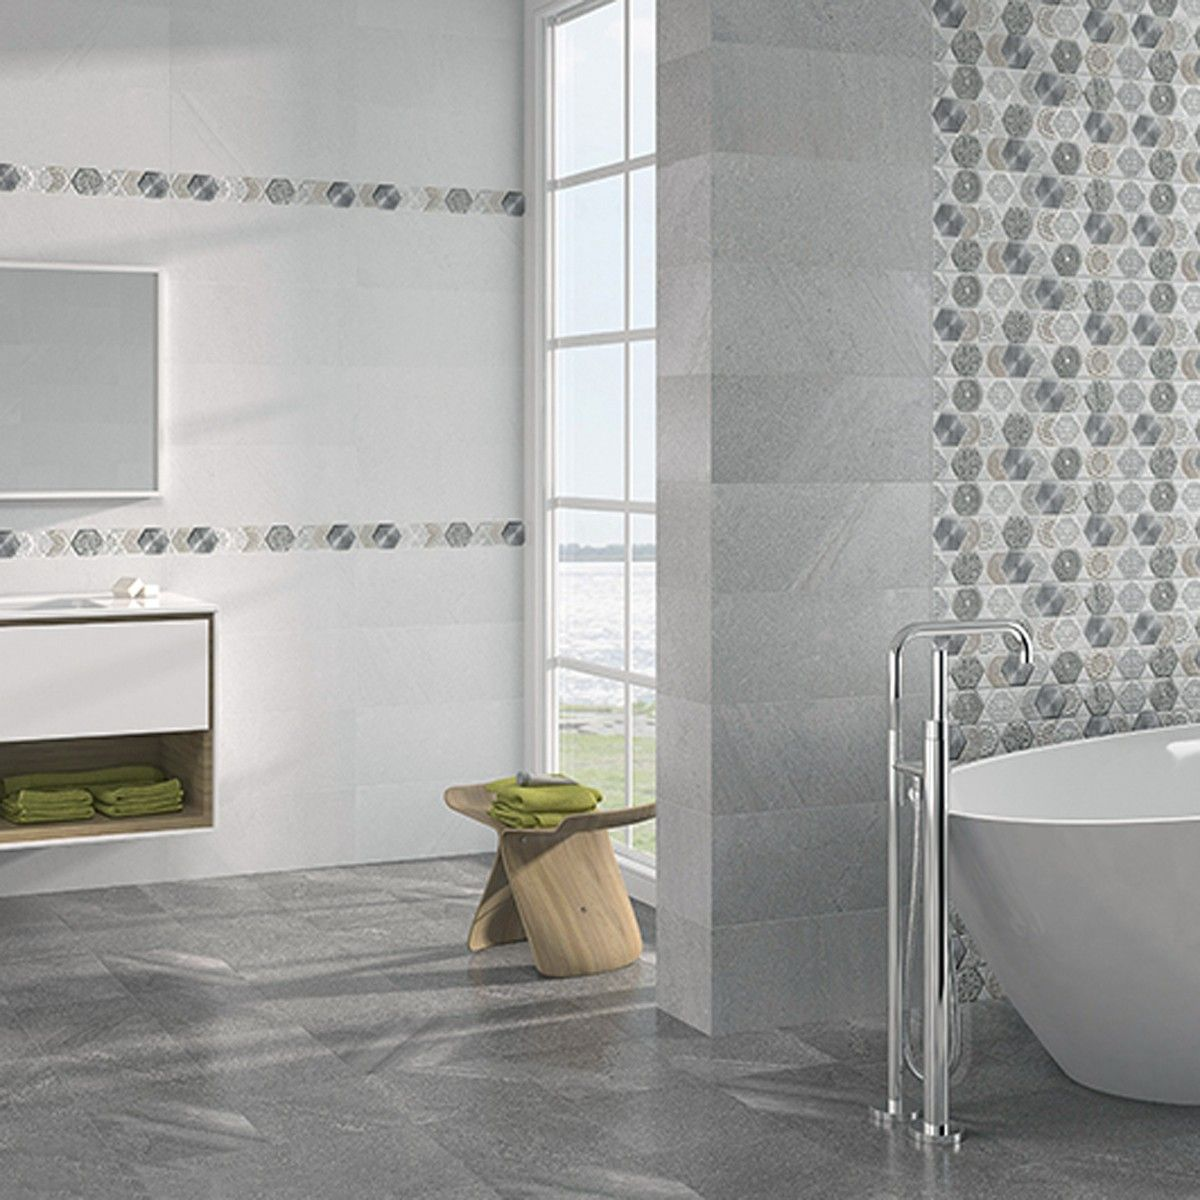 Globe Grafito Ceramic Floor Tiles Wall And Floor Tiles Tile Floor Patterned Floor Tiles